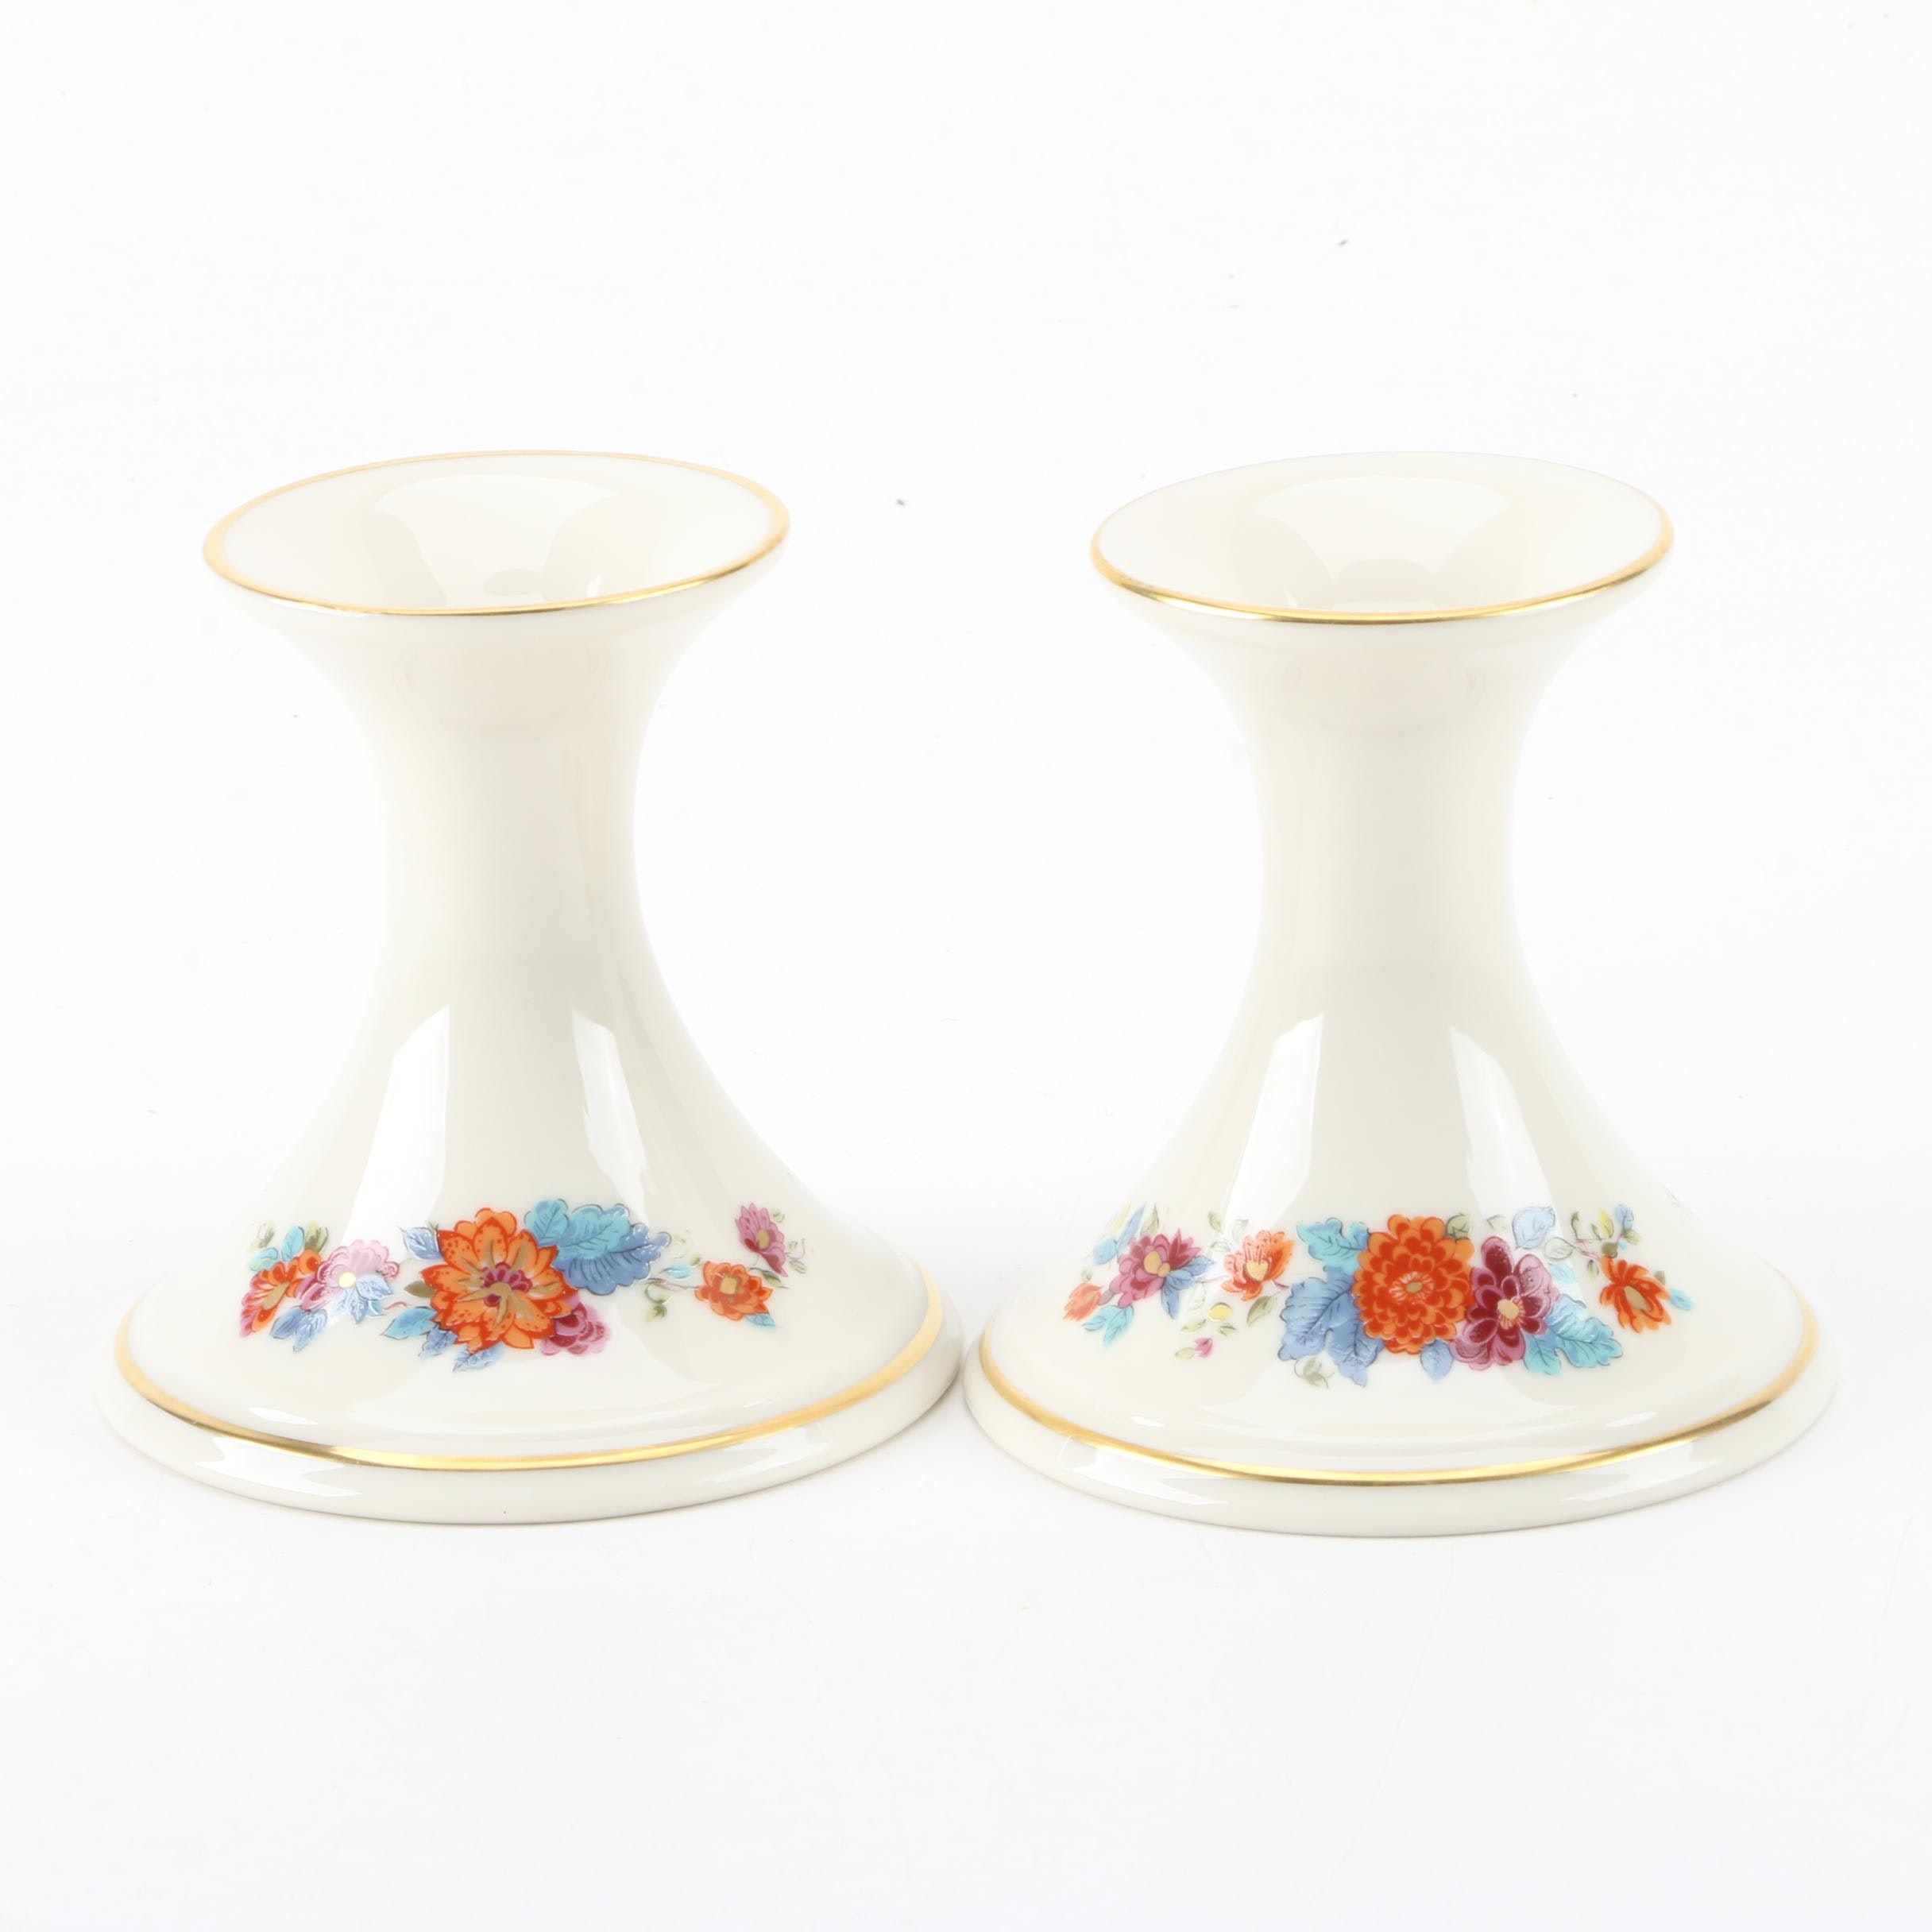 Lenox Porcelain Candle Holders